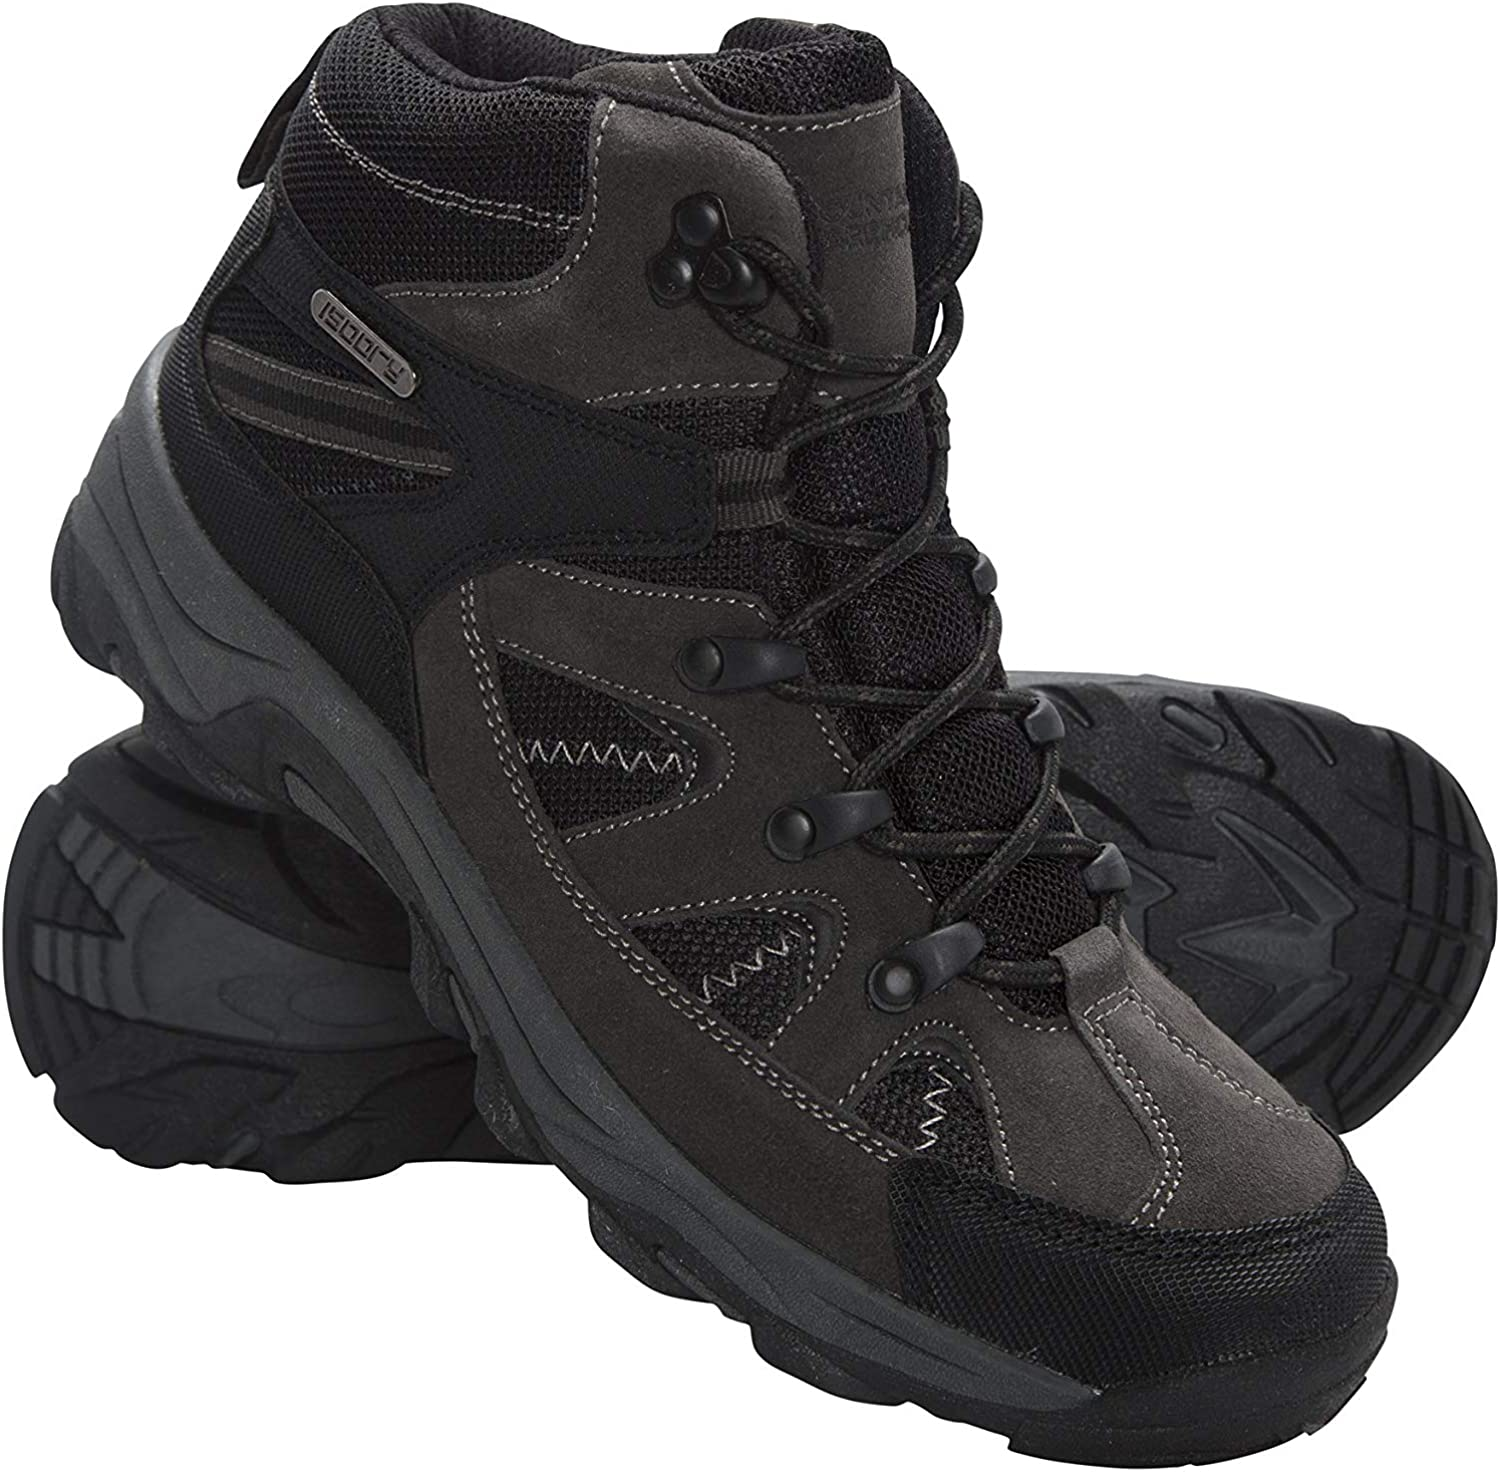 Mountain Warehouse Rapid Womens Waterproof Boots -Ladies Hiking shoes